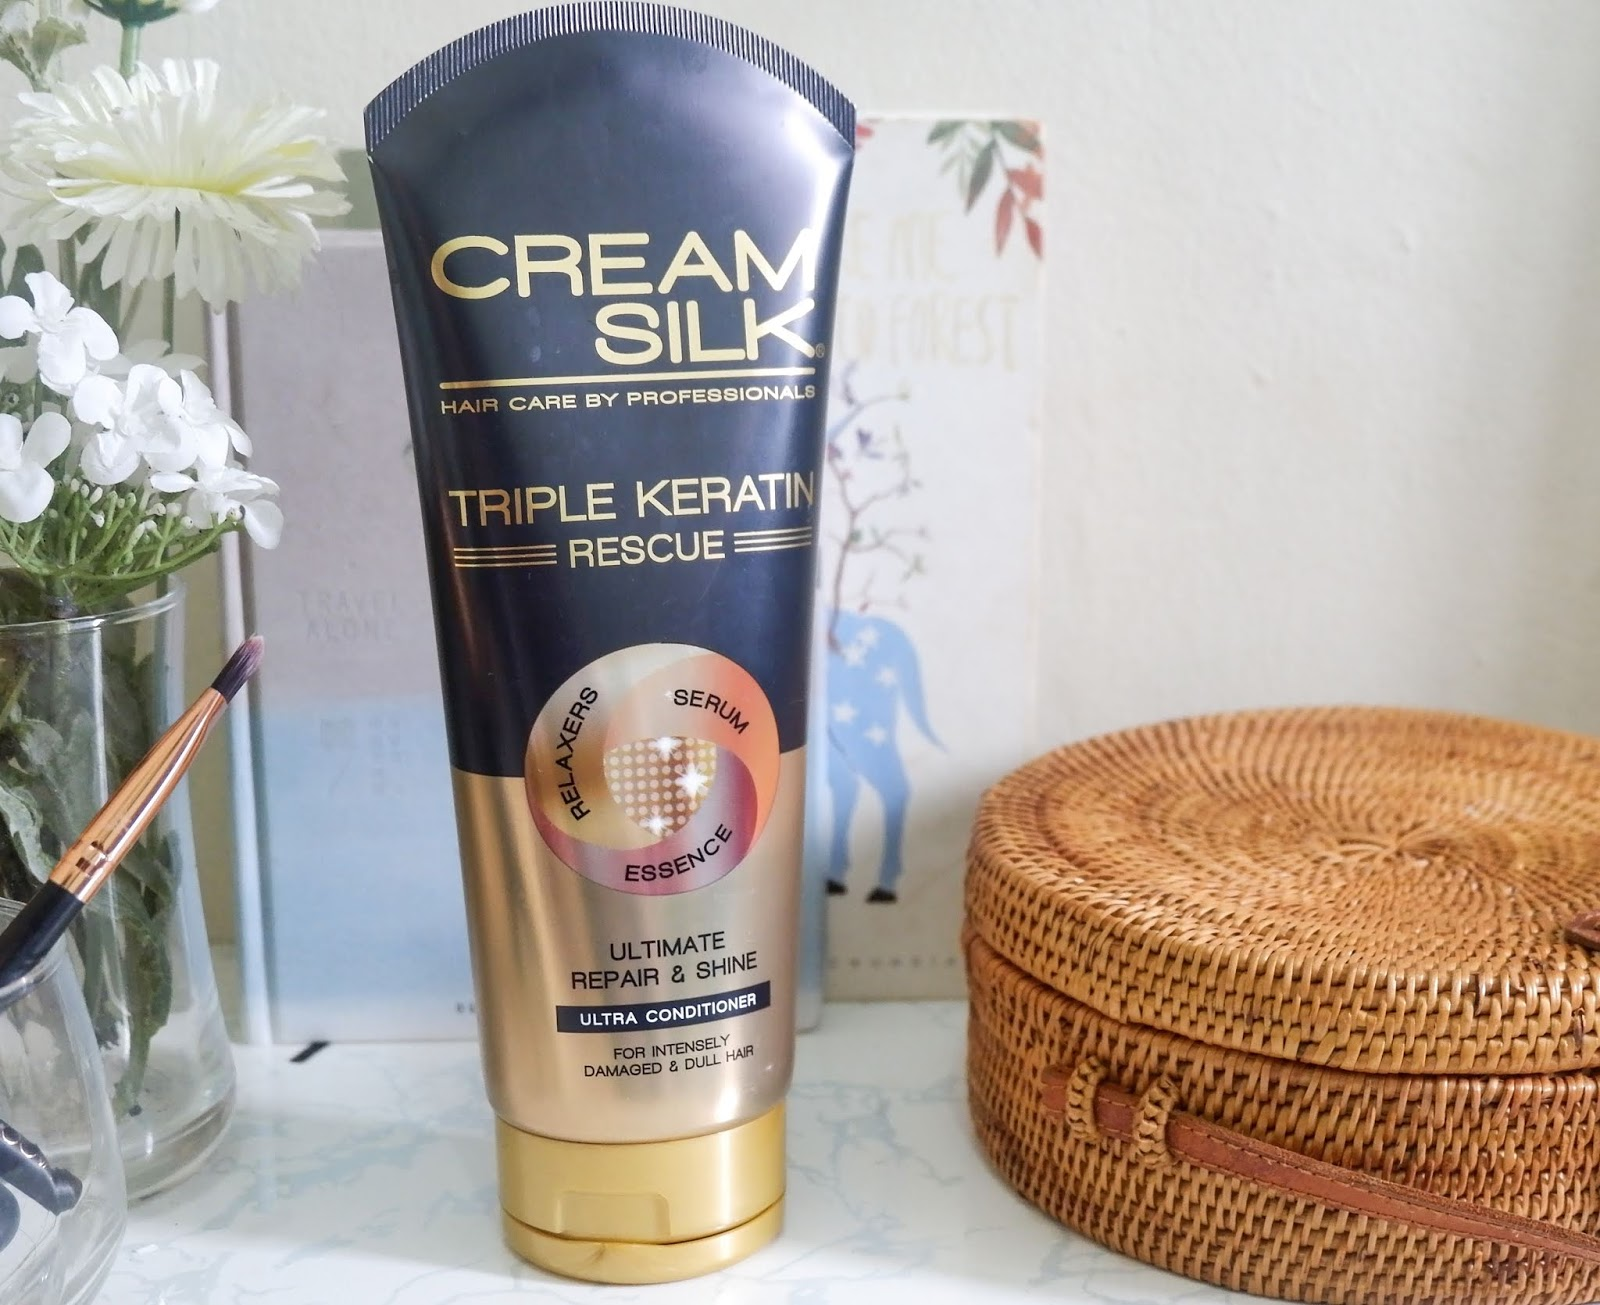 CREAM SILK PH: TRIPLE KERATIN RESCUE ULTRA-CONDITIONER REVIEW